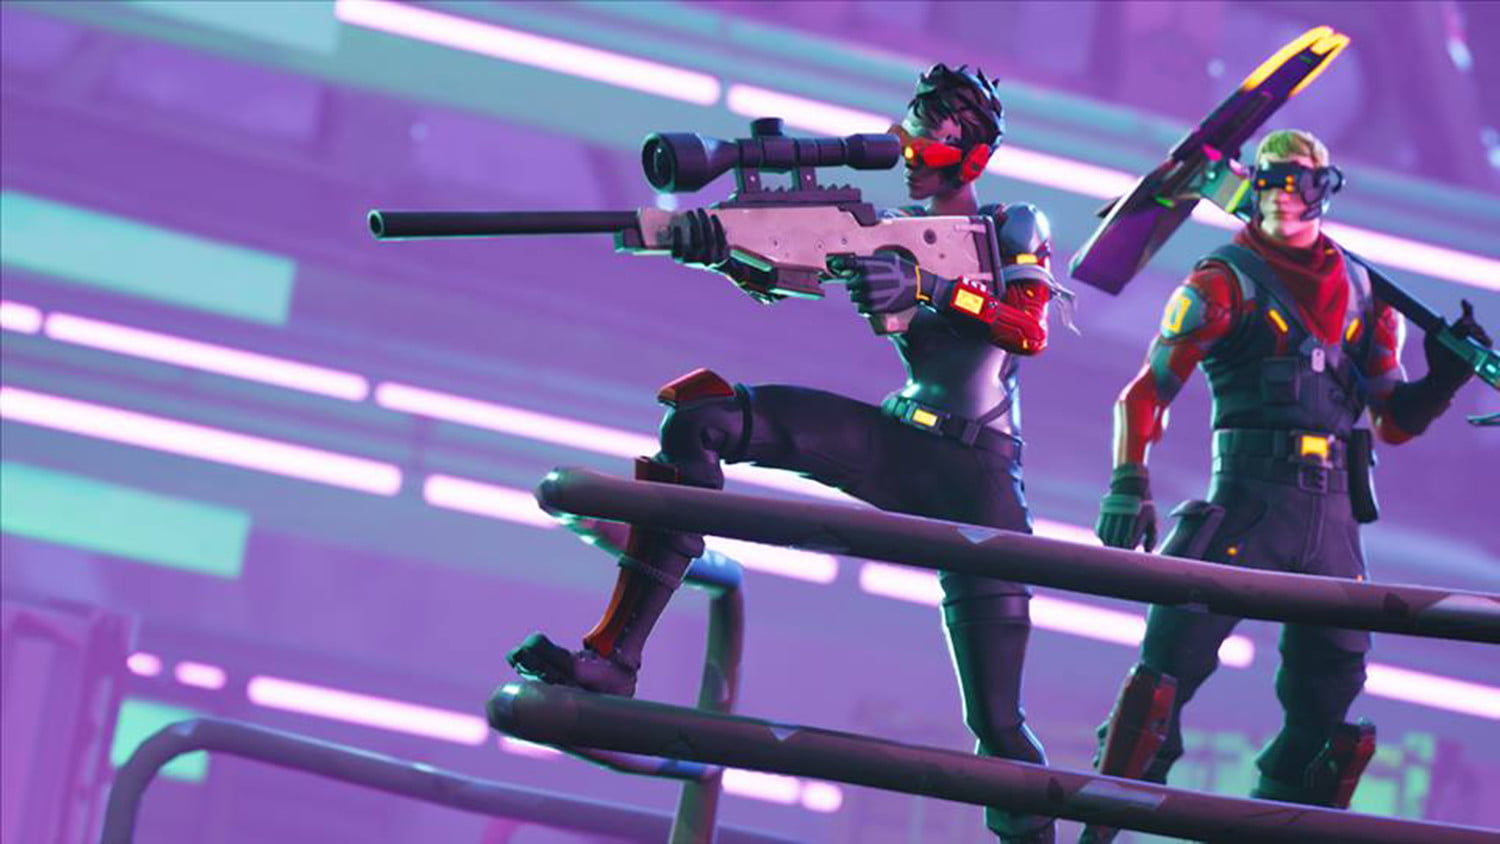 Tweaking these 'Fortnite' game settings can give you a split-second edge